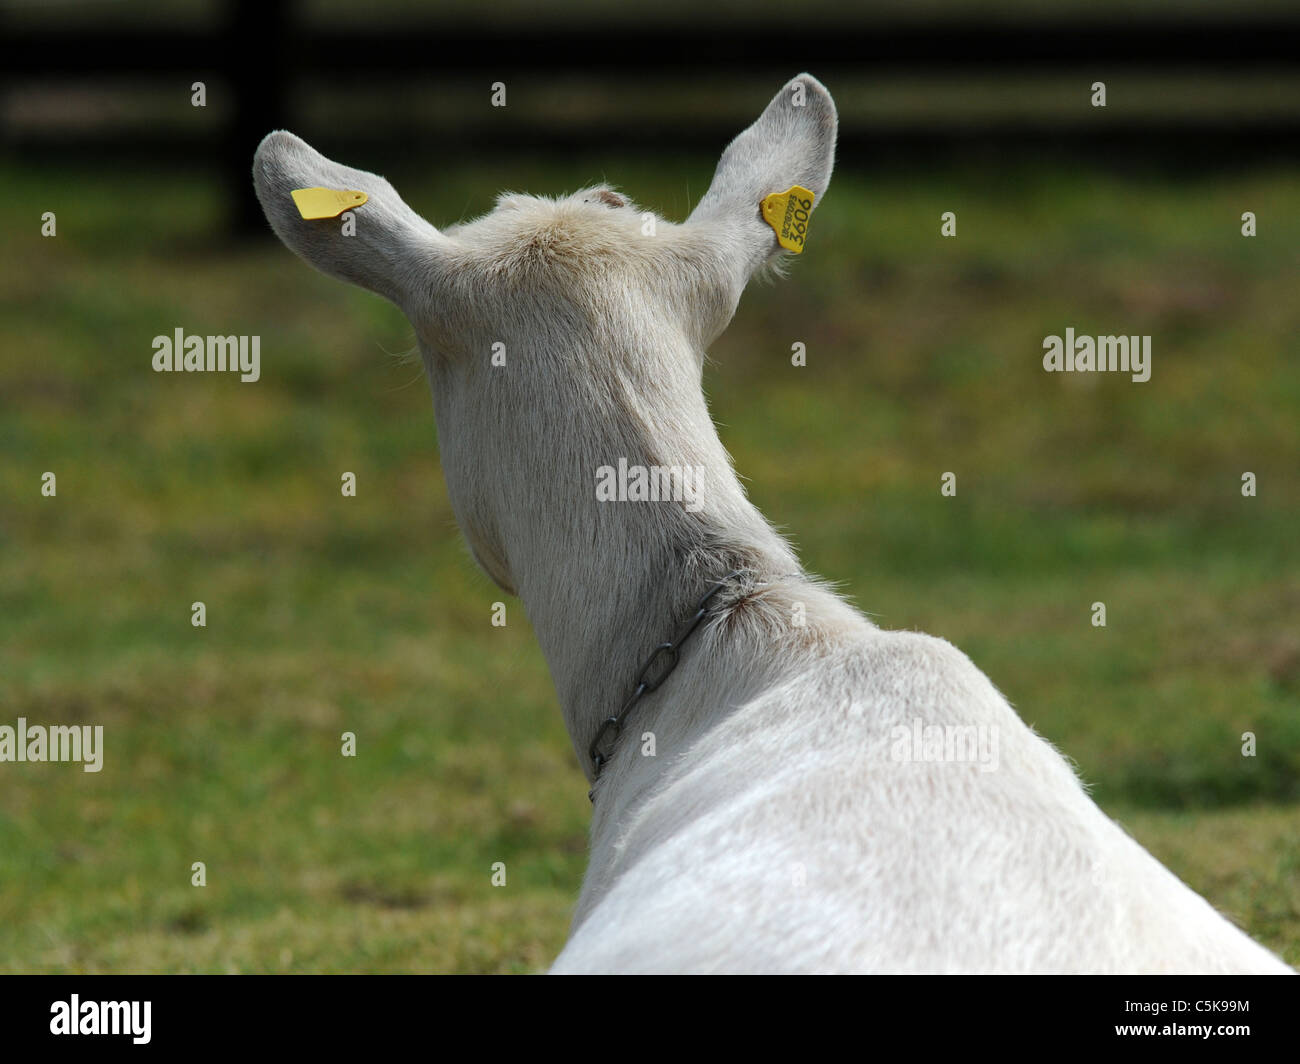 The back of a British Saanen goat - Stock Image